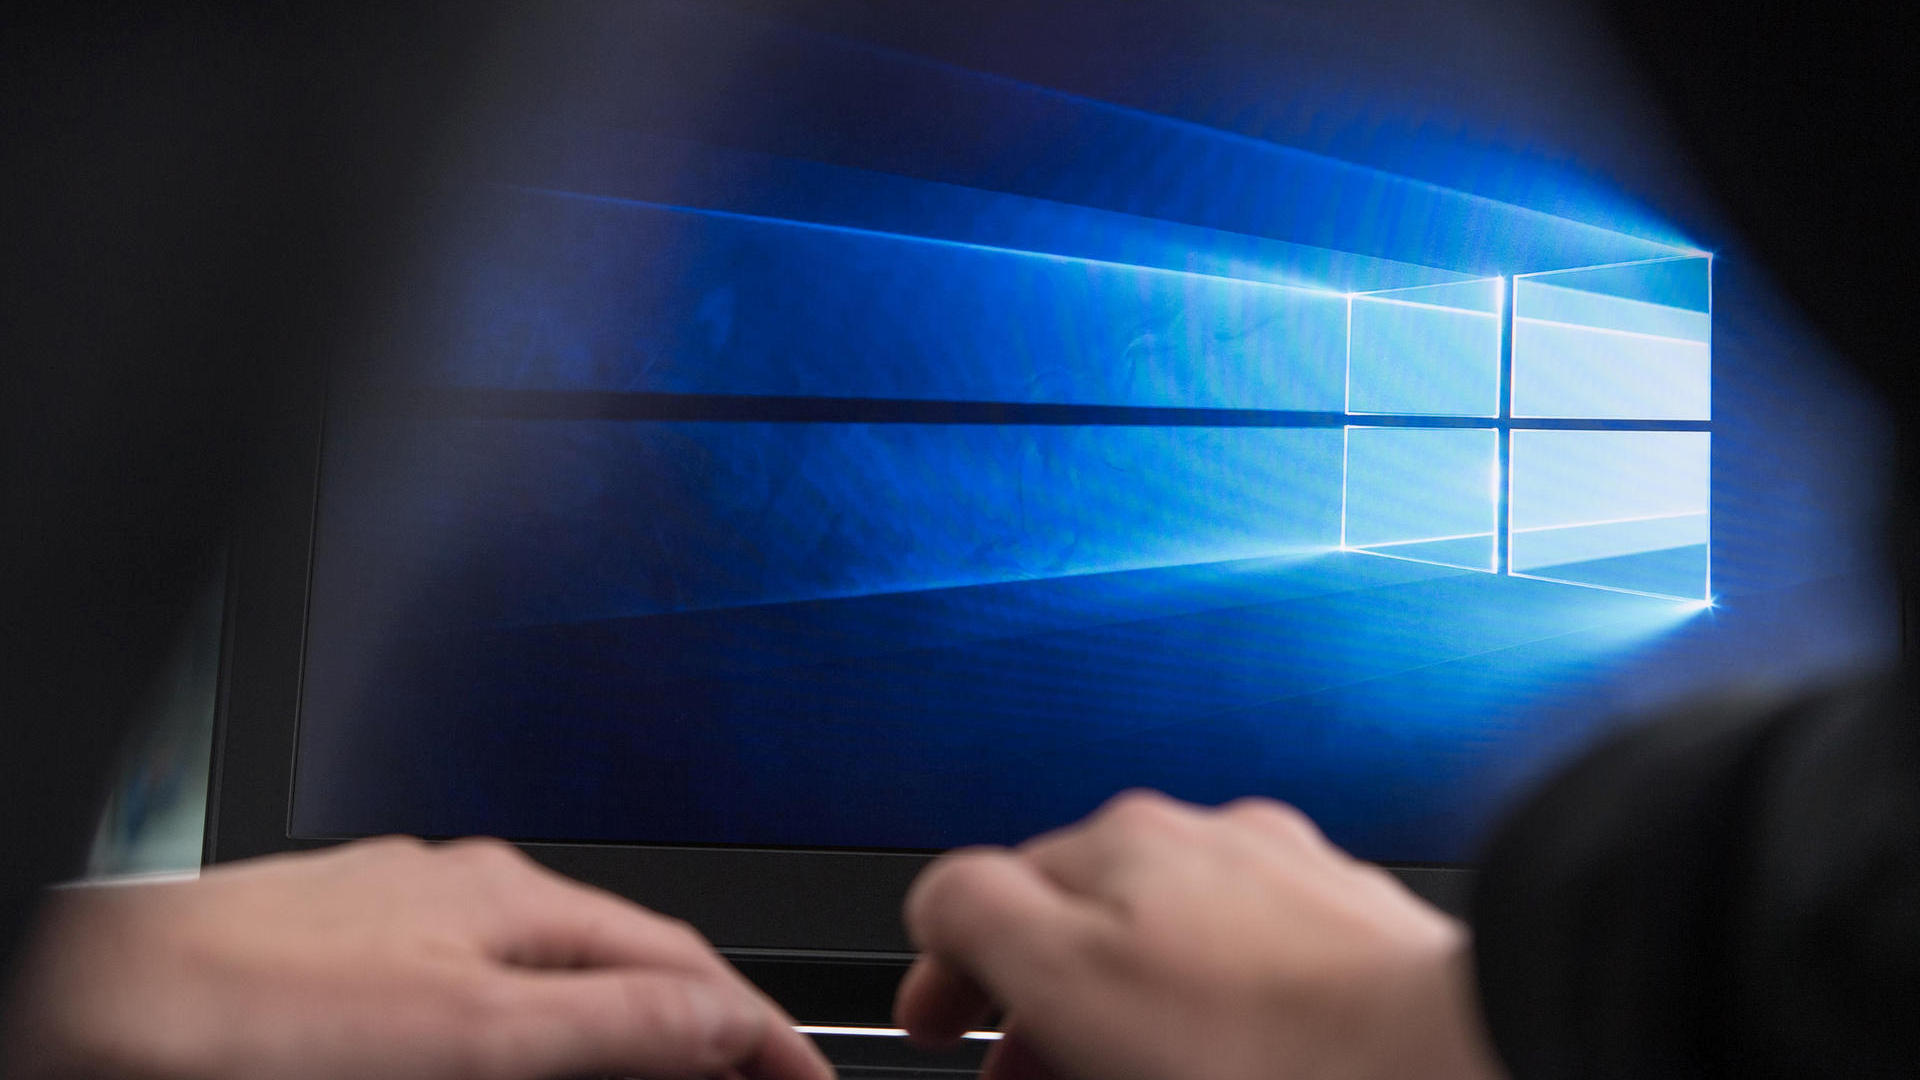 Microsoft beendet Support für ältere Windows-10-Version